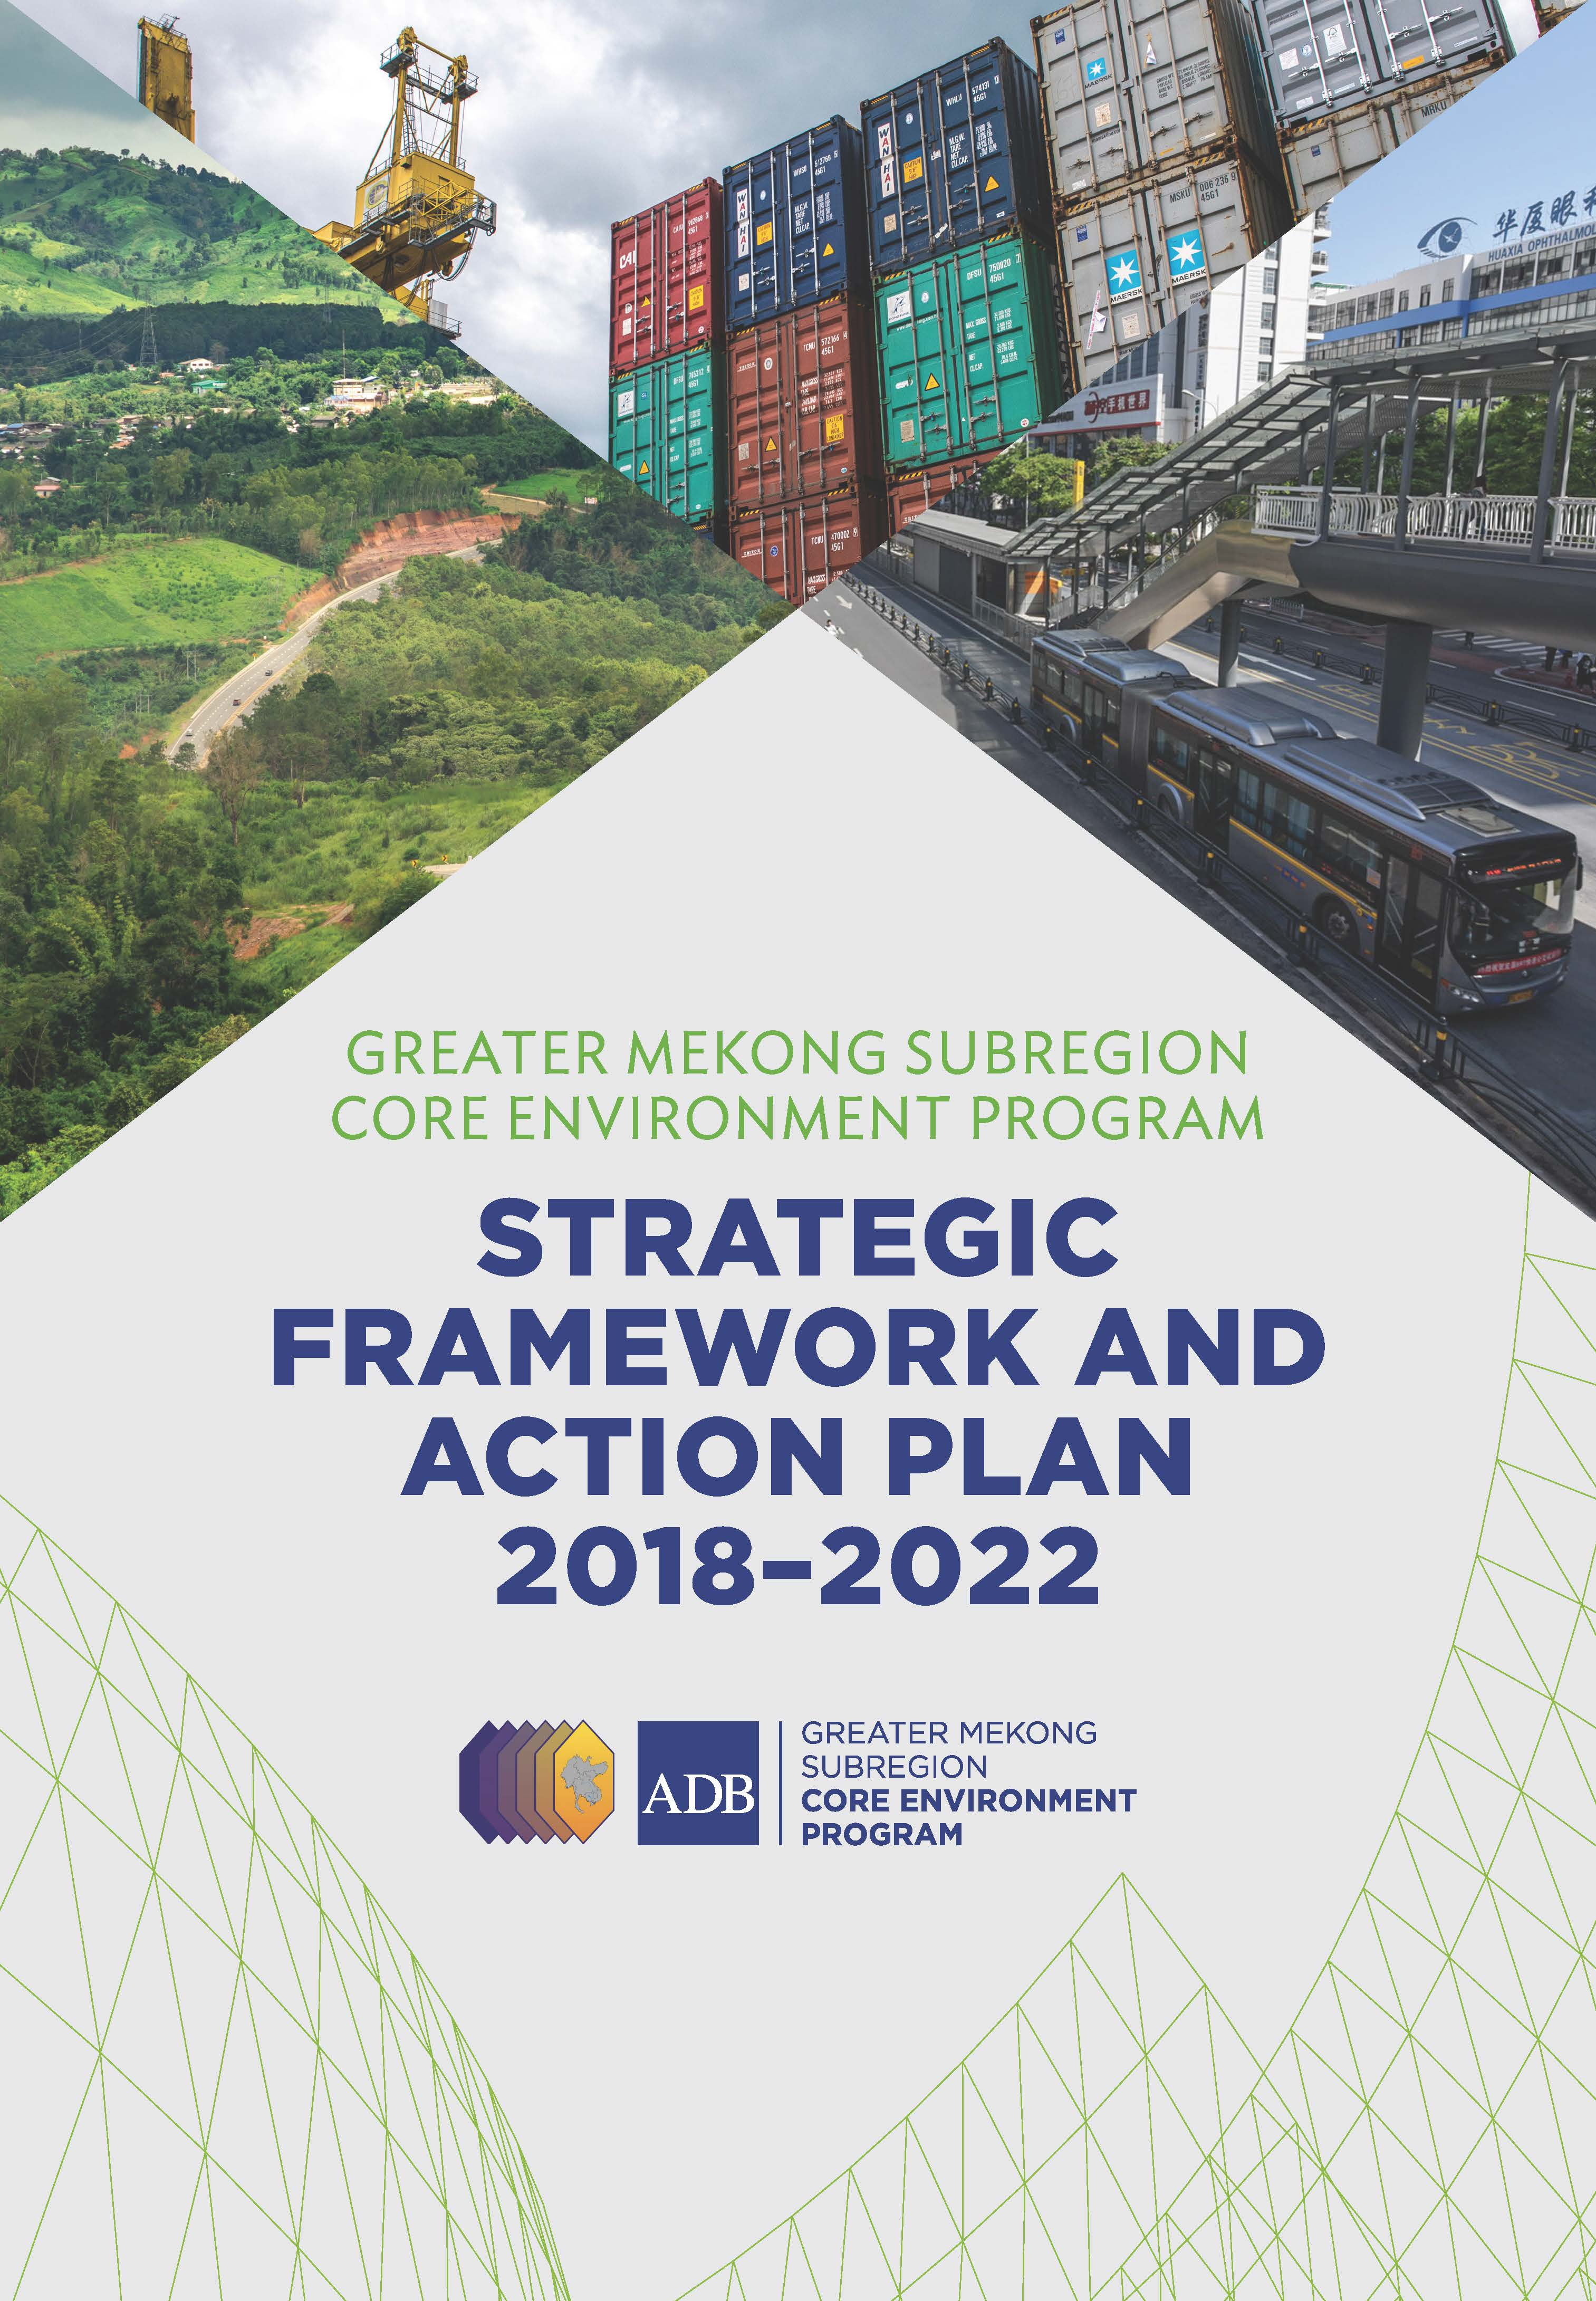 The GMS Core Environment Program Strategy and Action Plan, 2018-2022